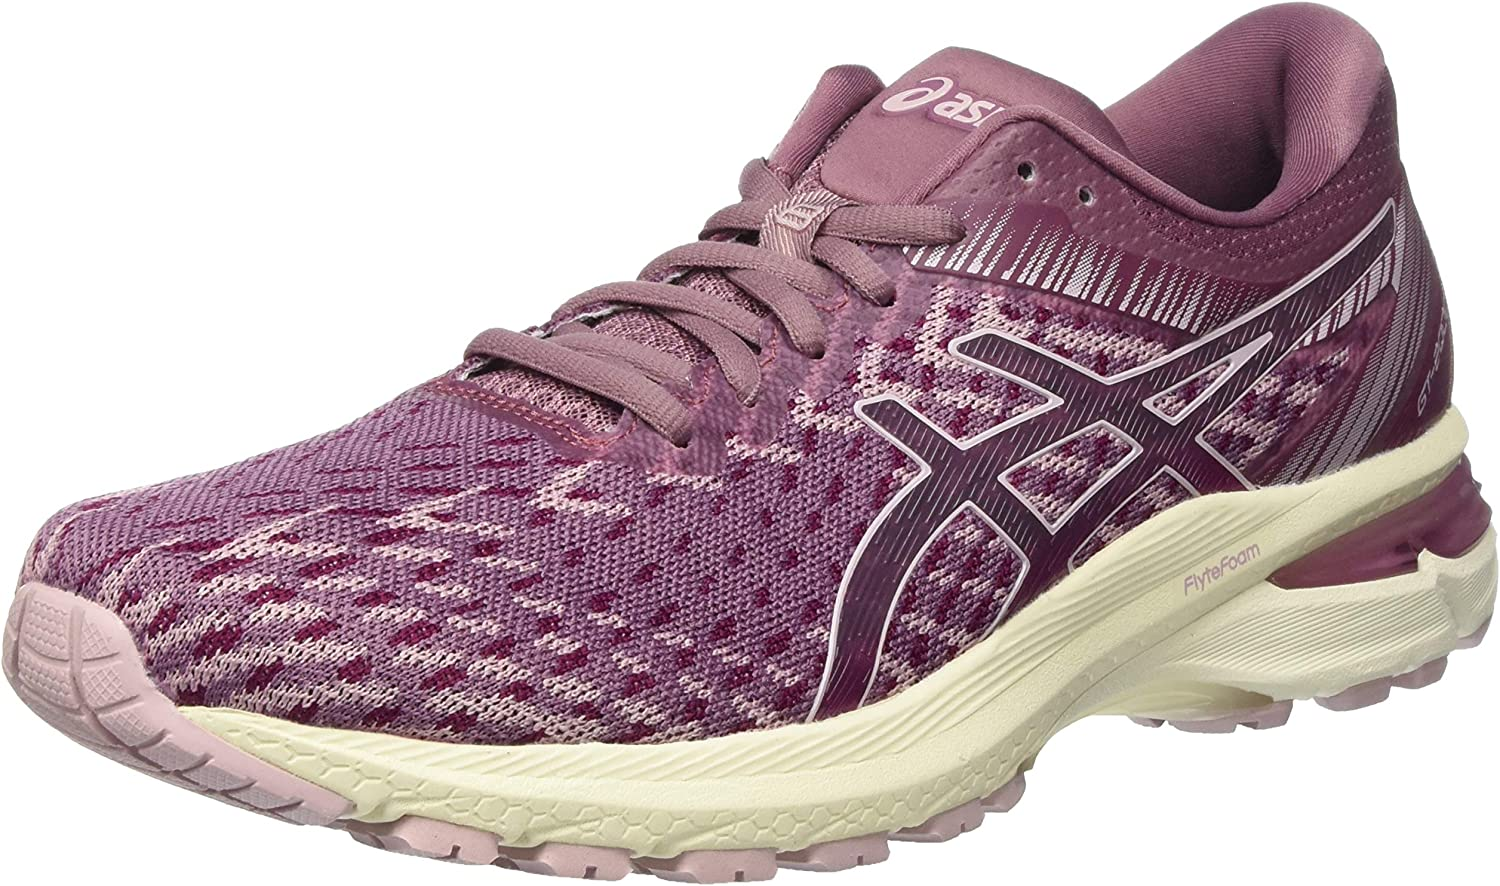 ASICS Gt-2000 8 Knit, Road Running Shoe para Mujer: Amazon.es: Zapatos y complementos